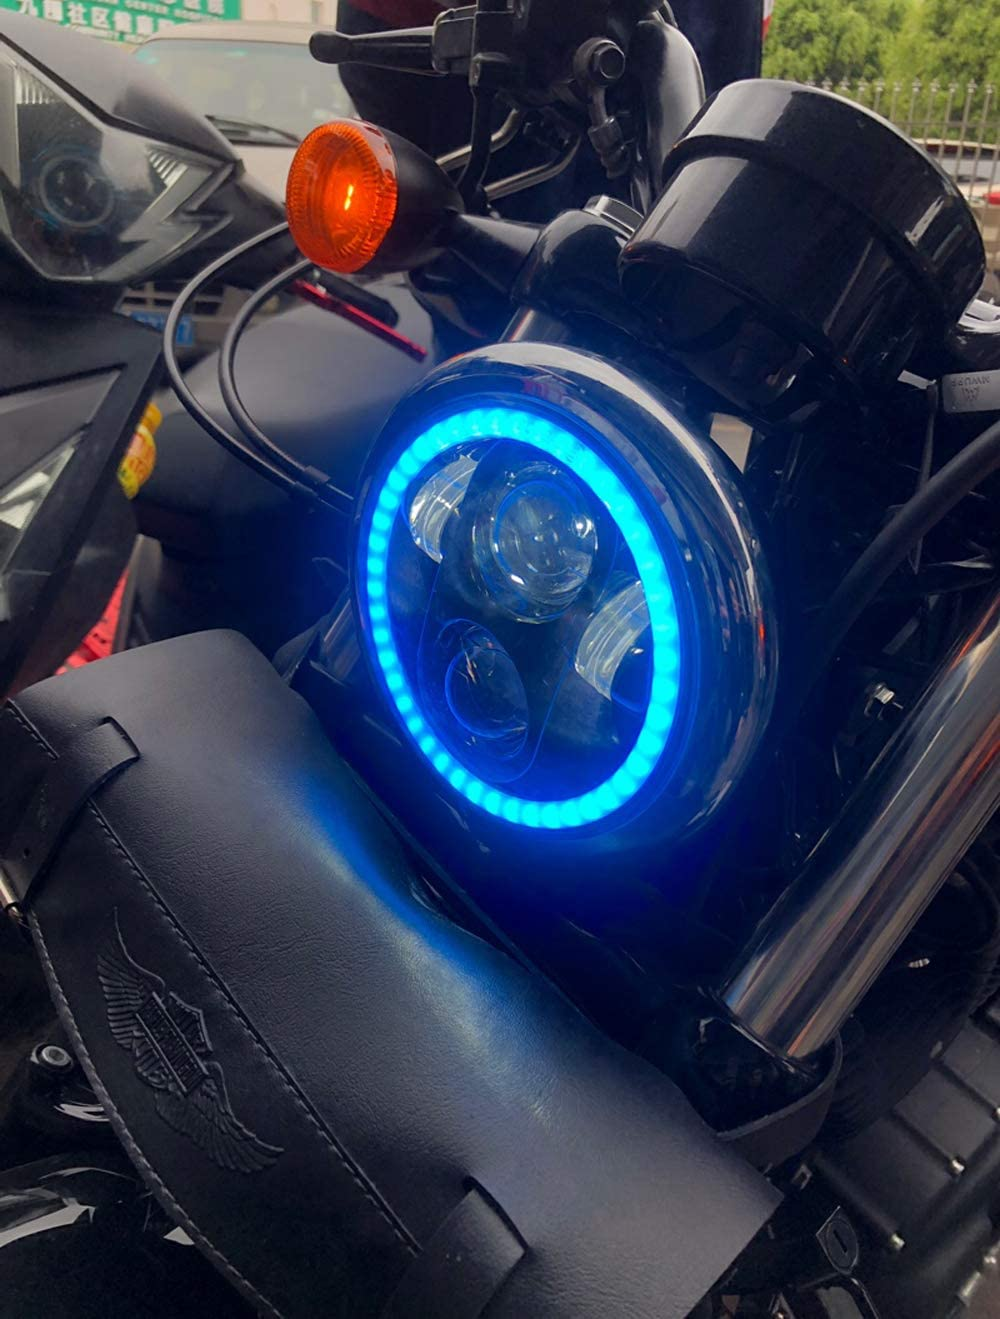 HOZAN 5.75 5-3//4inch Black LED Motorcycle Headlight Bluetooth Control RGB Halo for Indian Scout Harley Sportster Wide Glide XL1200 XG750 883 48 Night Rod